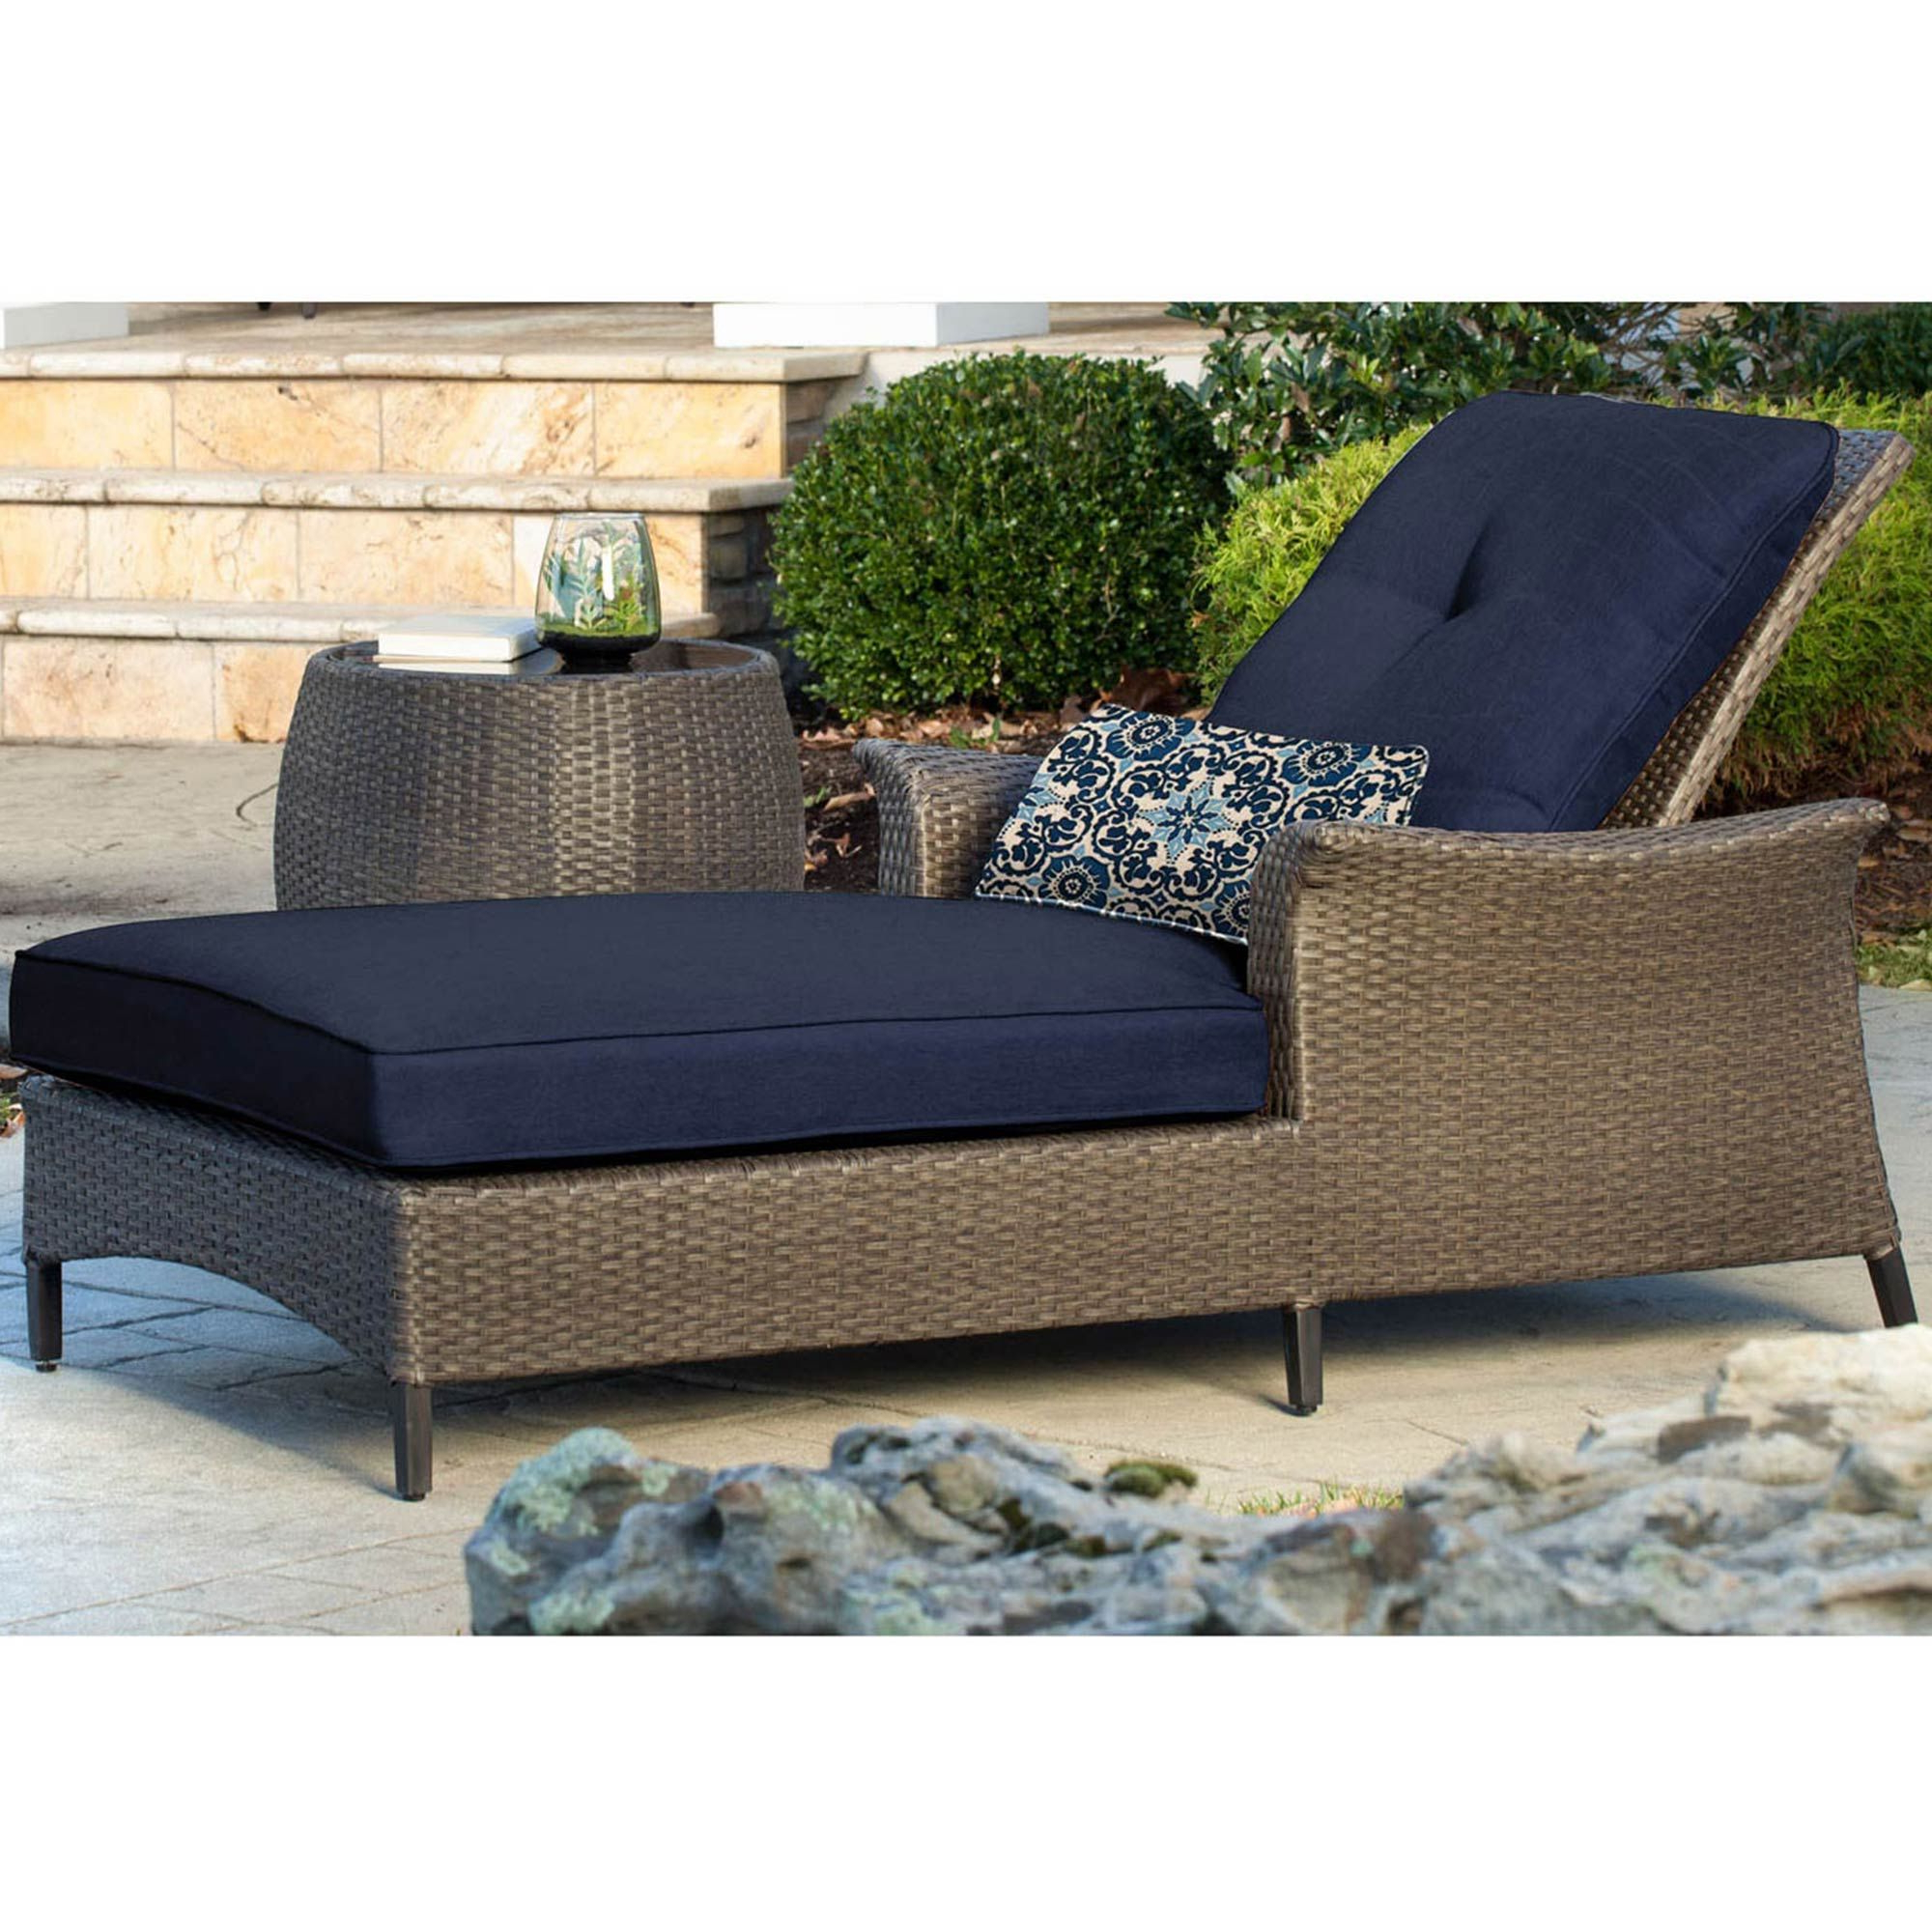 Trendy Instantly Create A Sophisticated Outdoor Space With The For 2 Piece Outdoor Wicker Chaise Lounge Chairs (View 23 of 25)